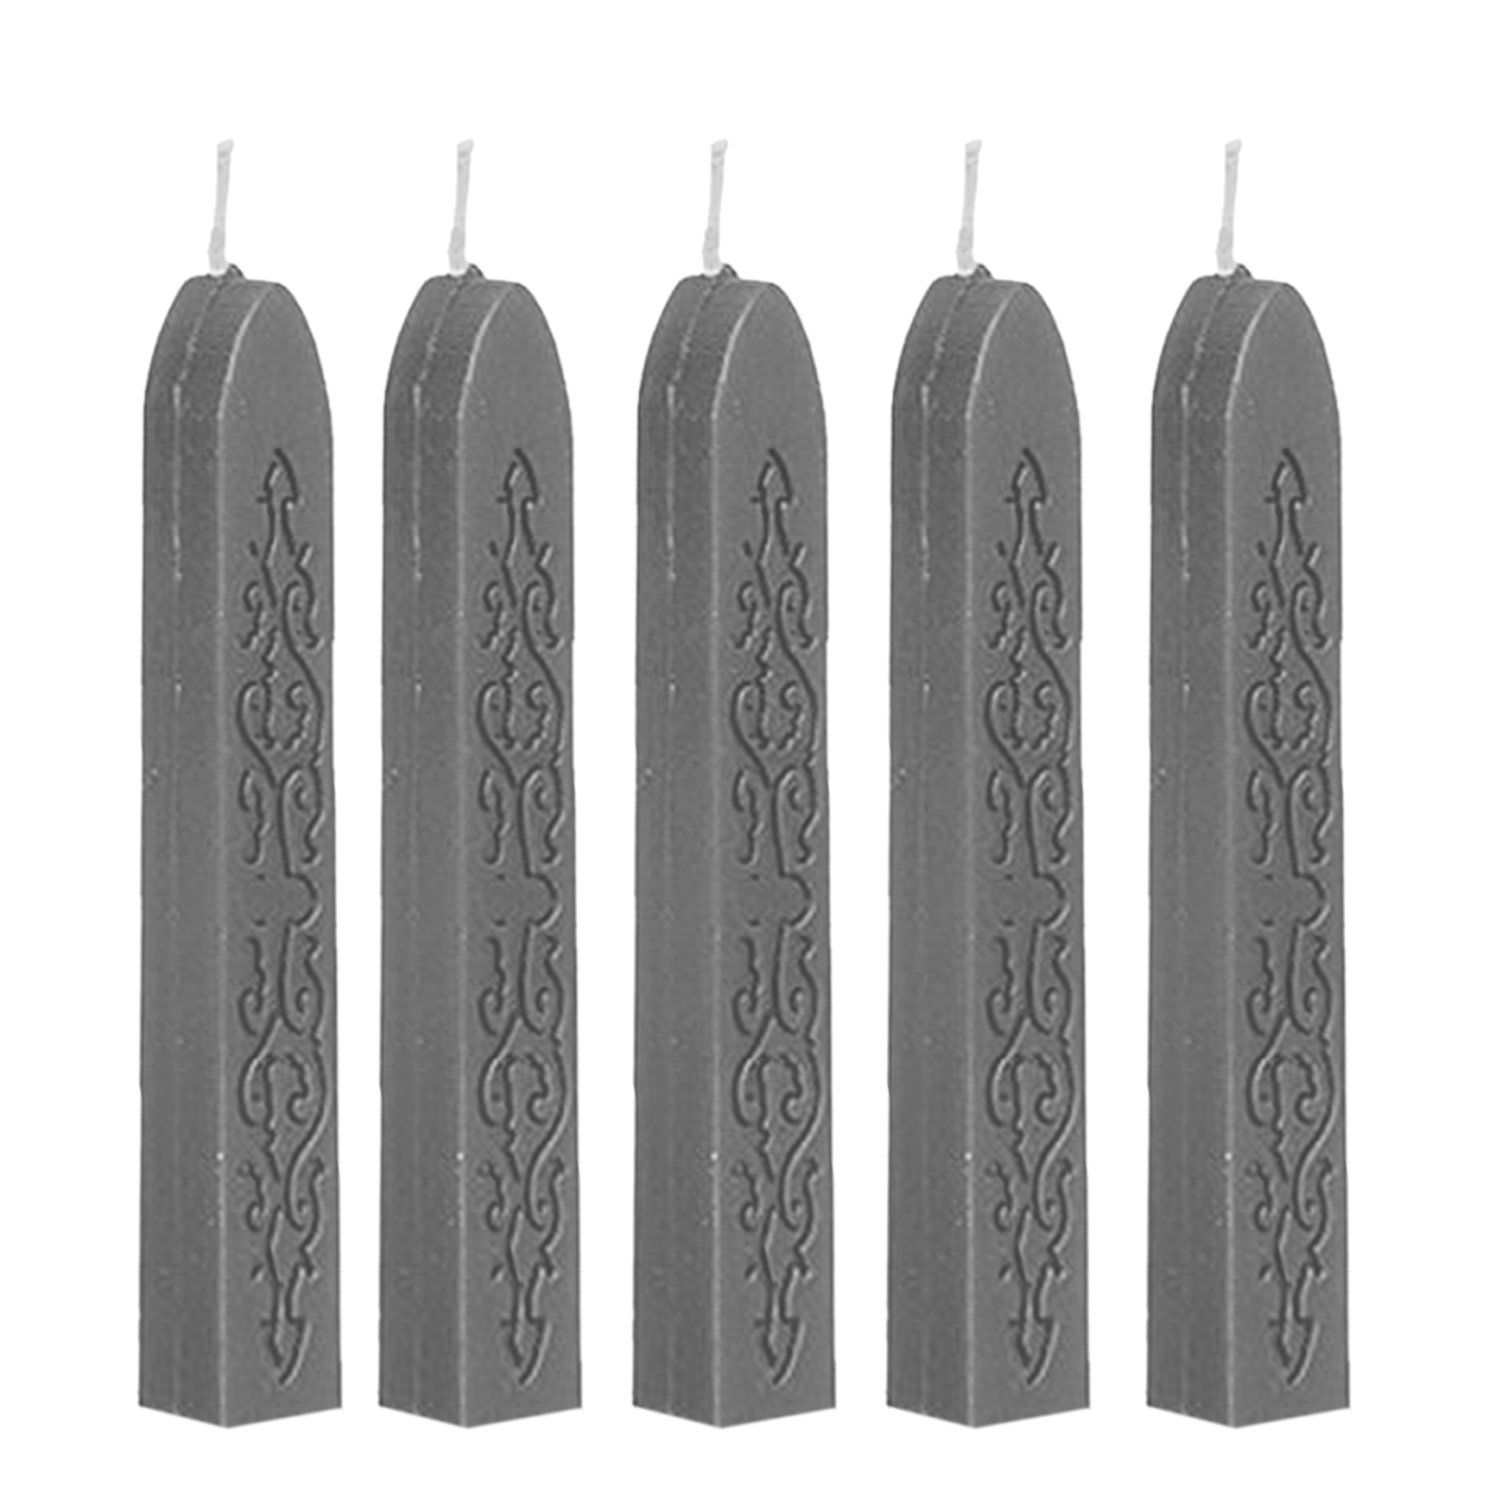 RALMALL 5 Pcs Totem Fire Manuscript Sealing Seal Wax Sticks with Wicks Cord Wick Sealing Wax For Postage Letter Retro Vintage Wax Seal Stamp (Blue)